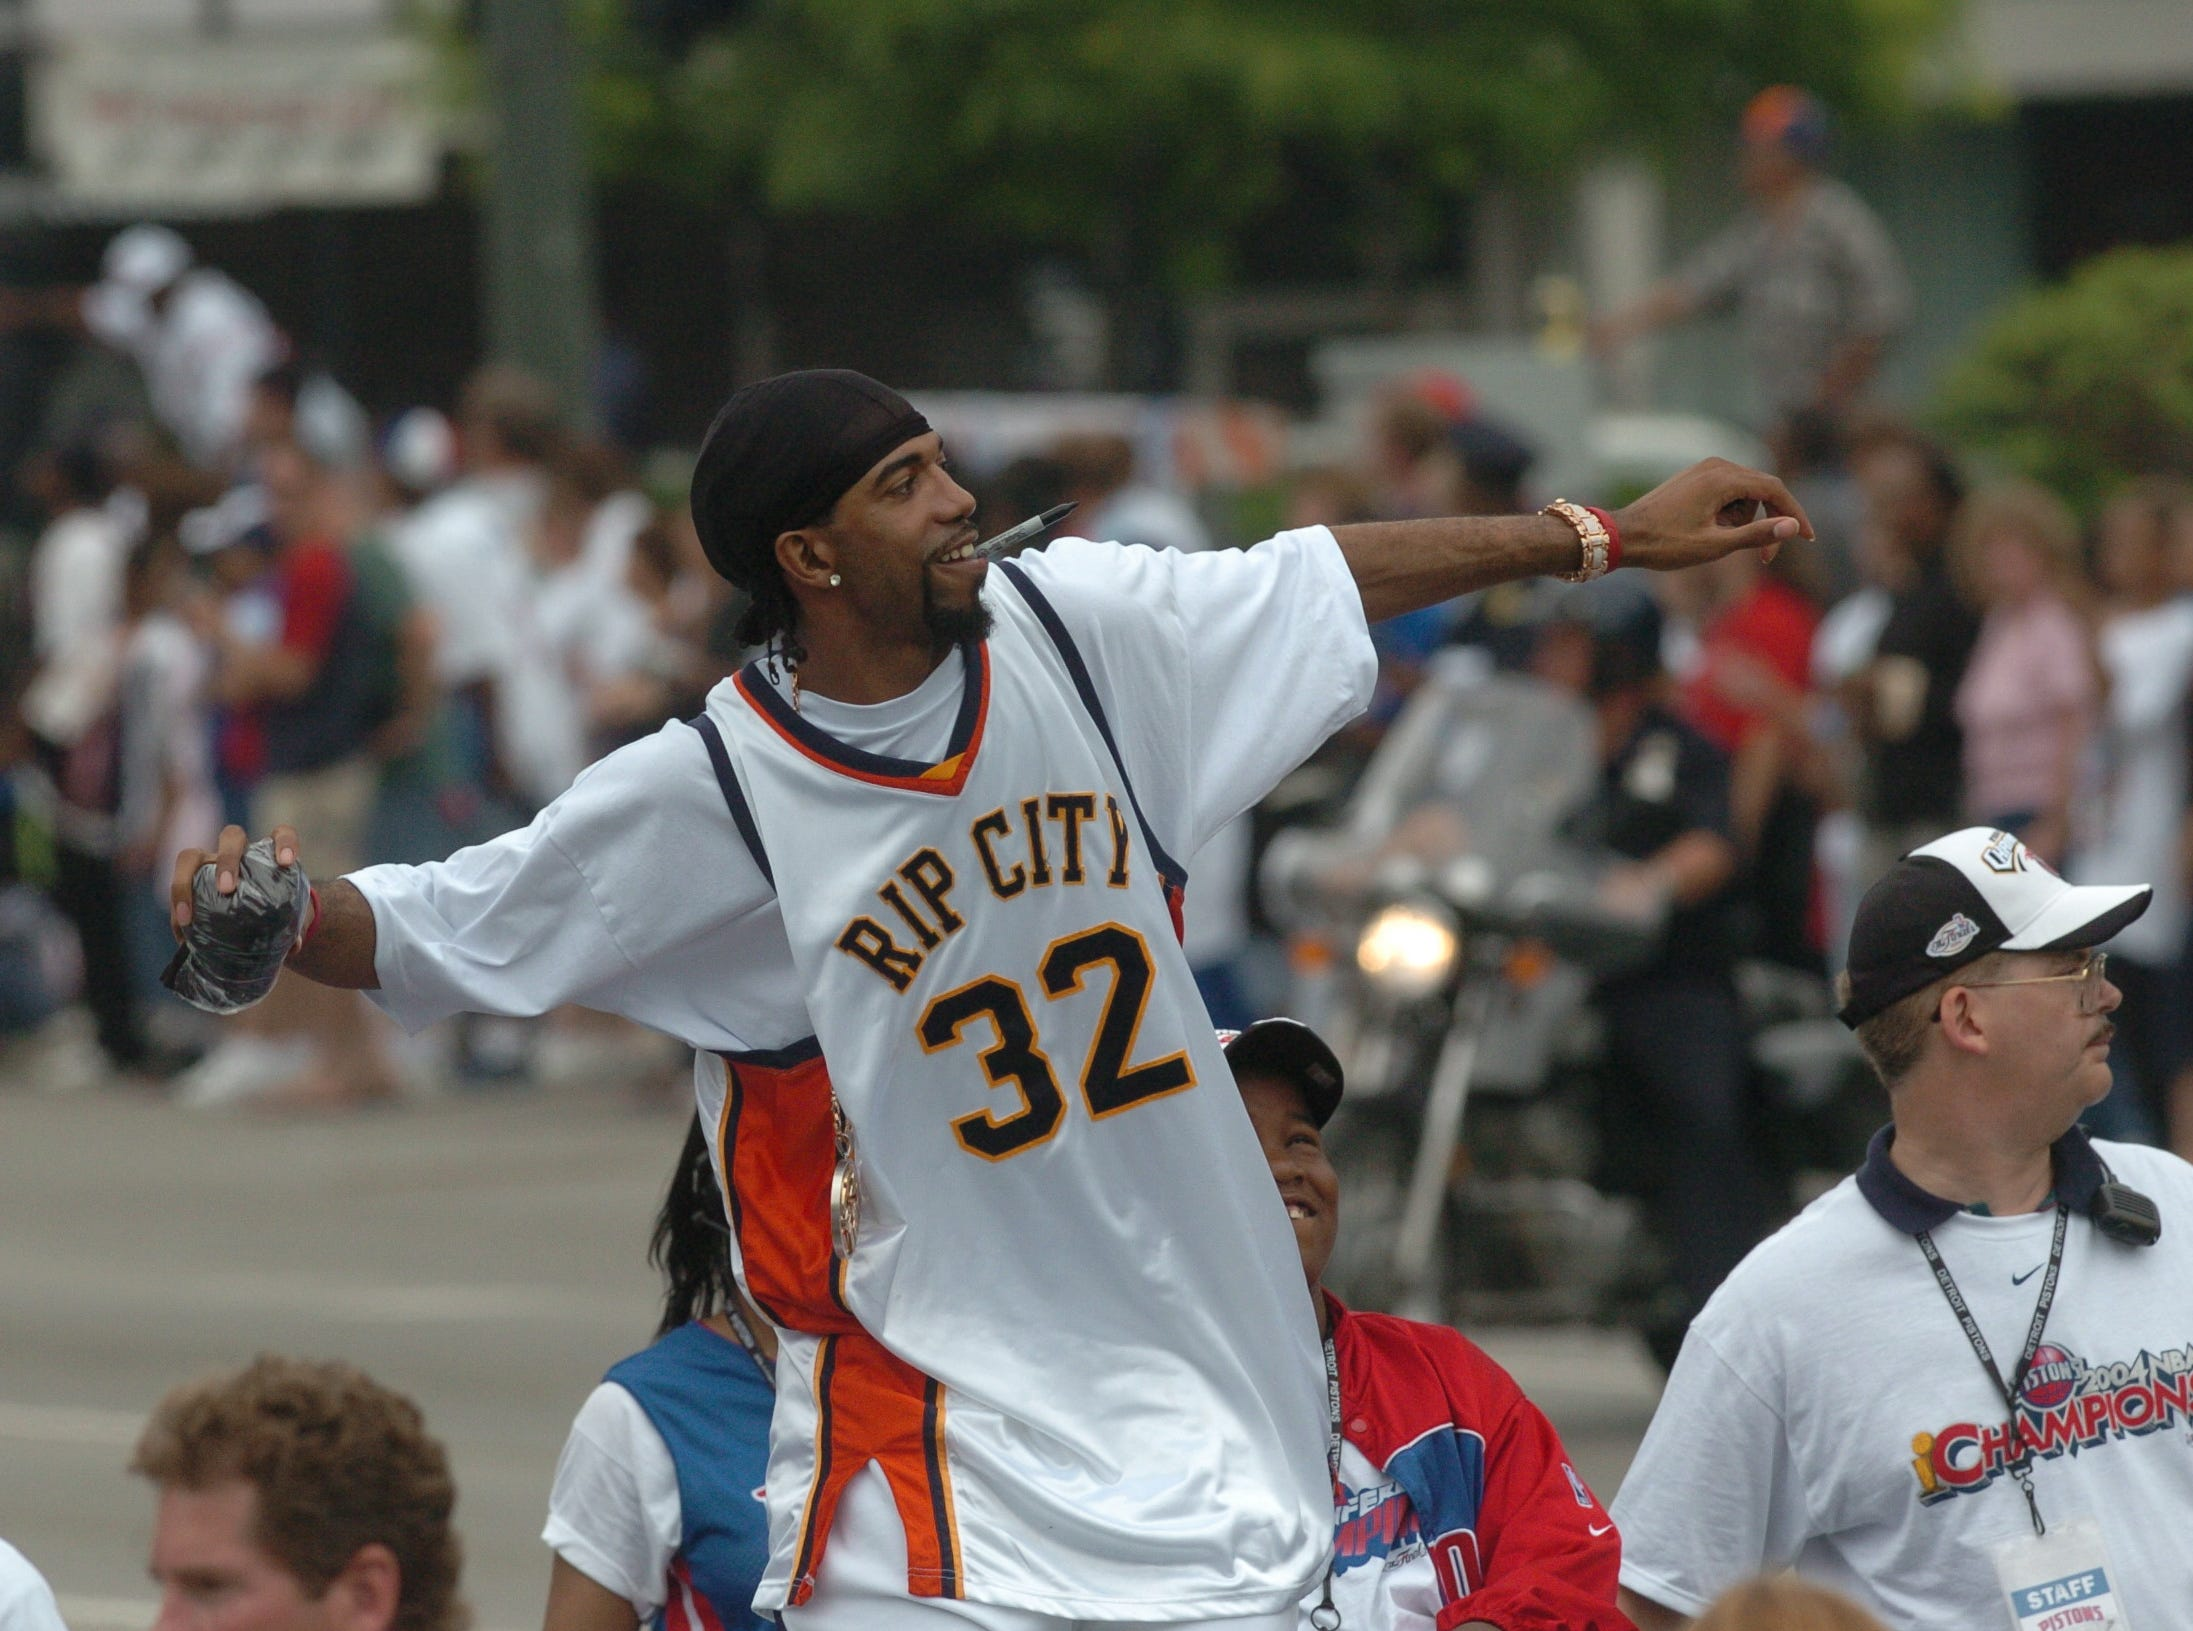 Detroit's Richard Hamilton tosses one of many personally-signed T-shirts into the crowd during the Detroit Pistons victory parade.